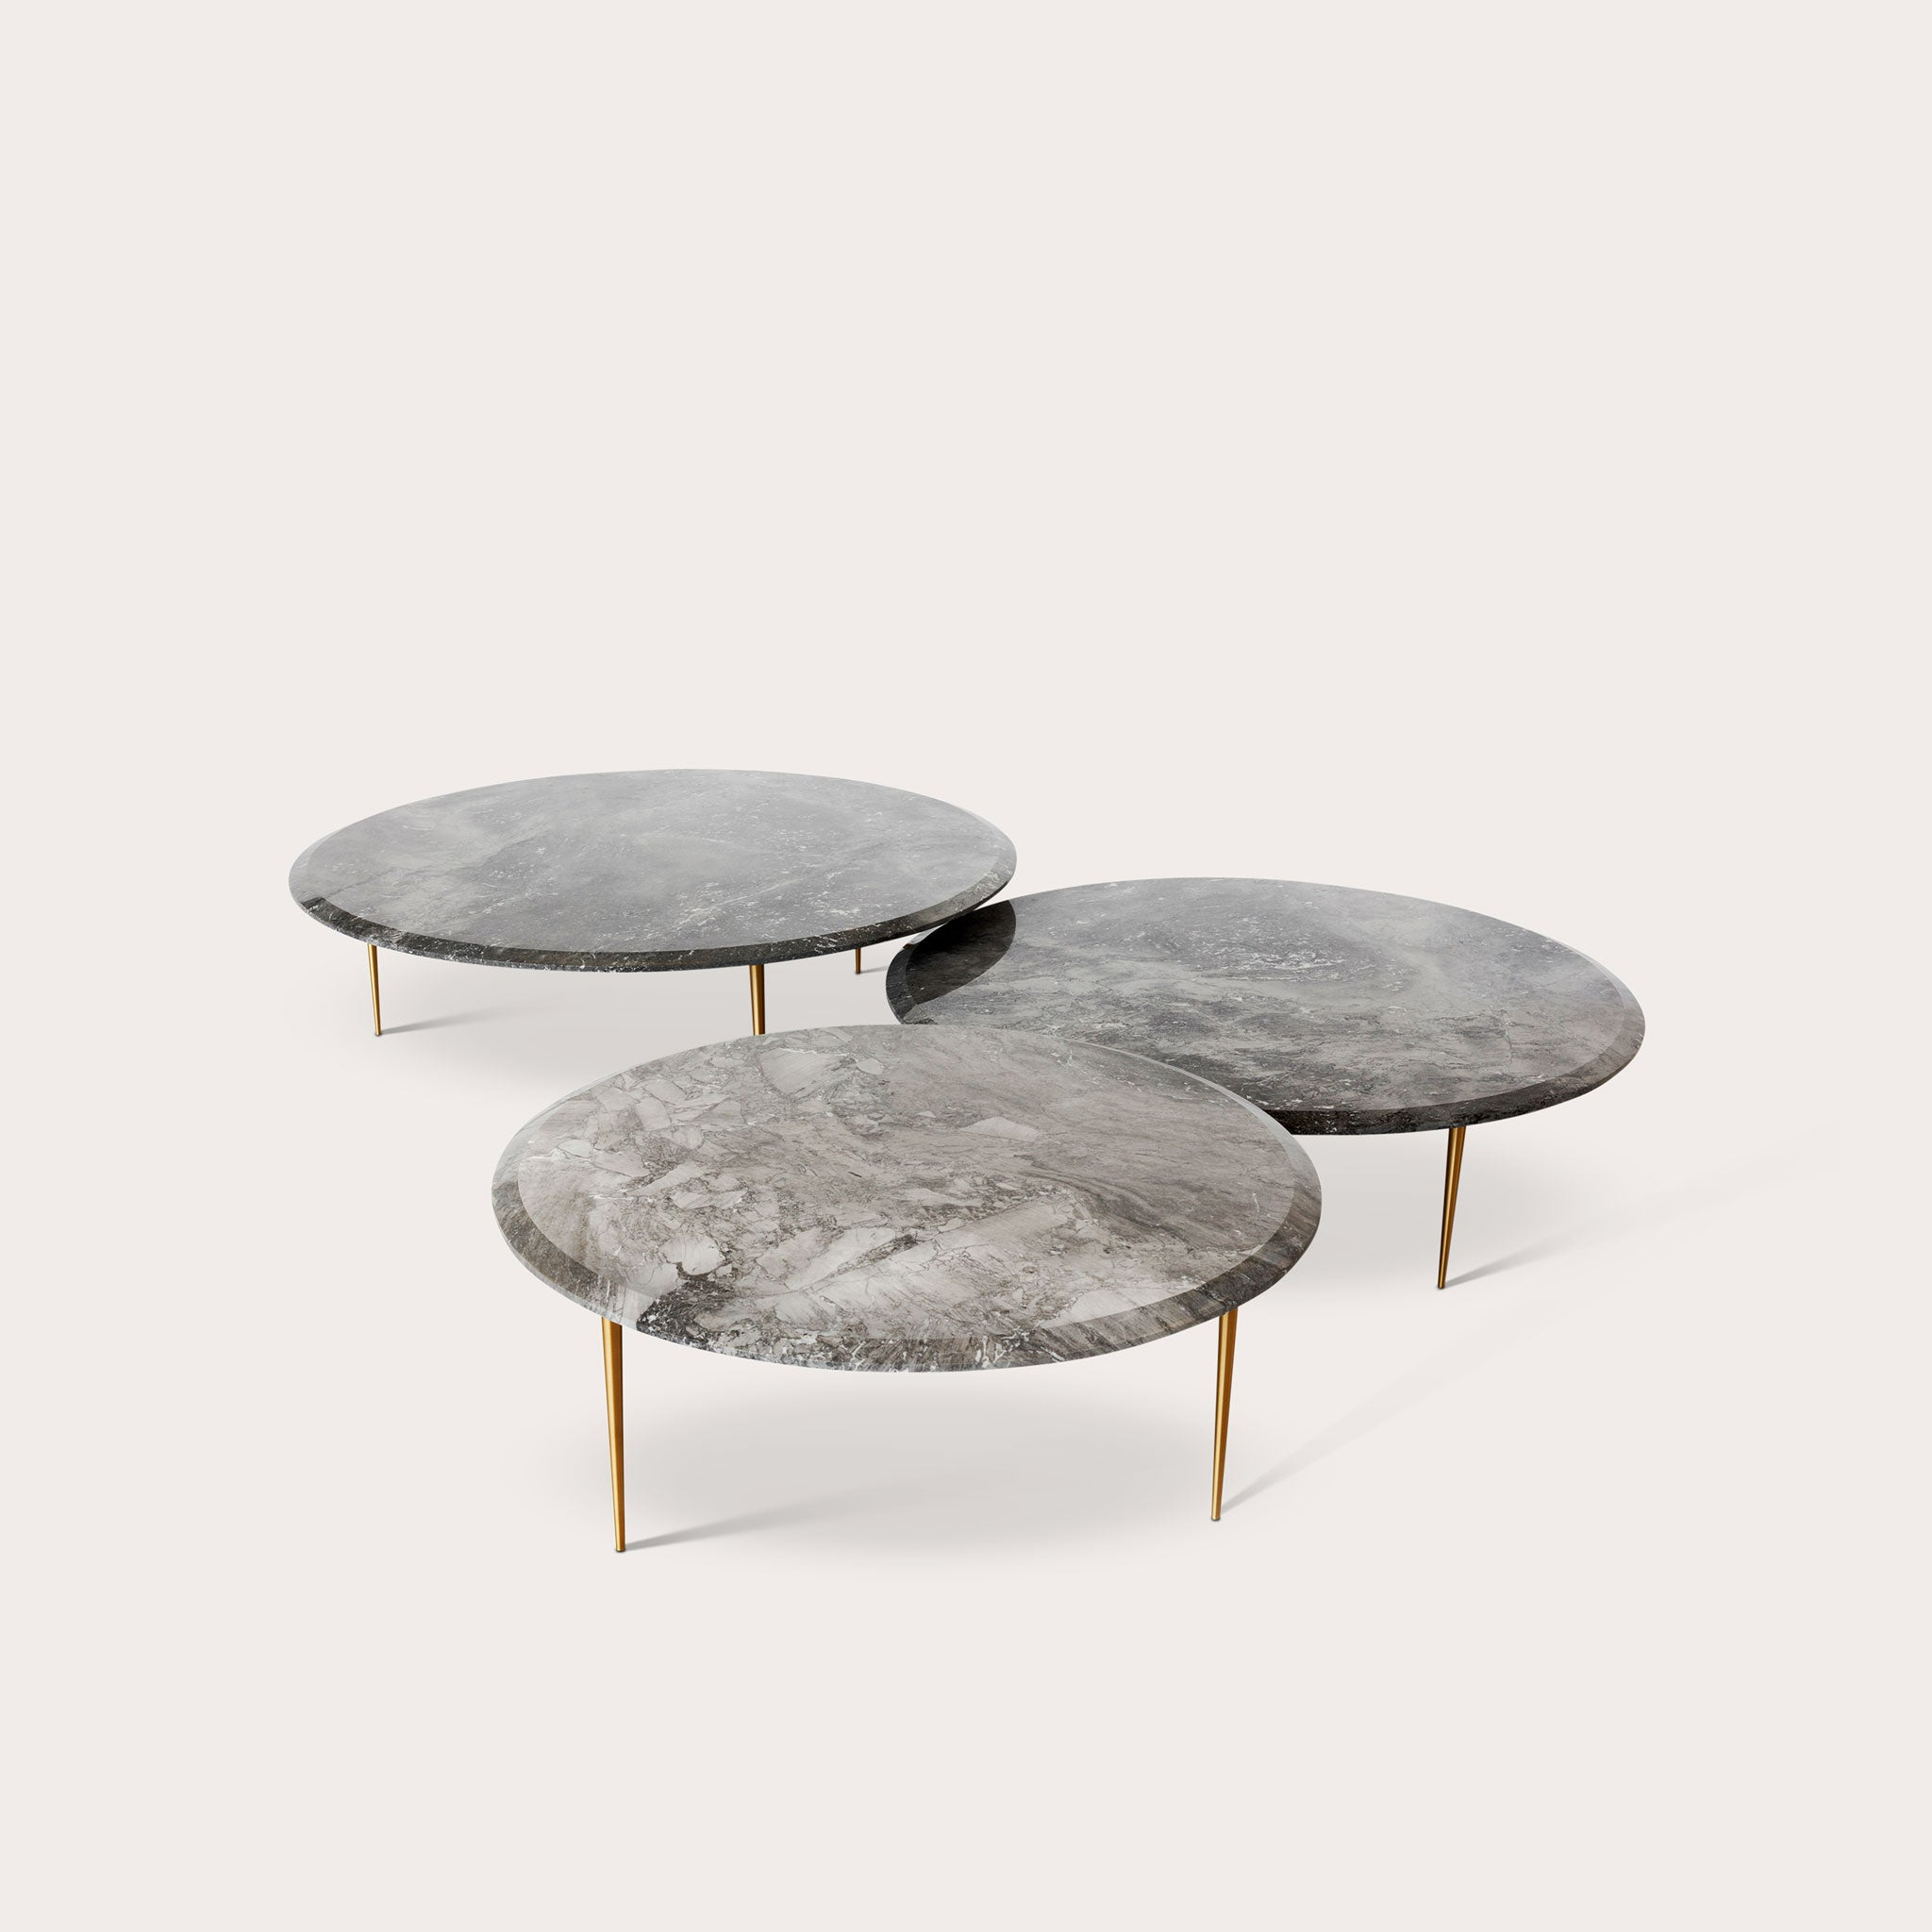 Moon Coffee Tables Simone Coste Designer Furniture Sku: 992-230-10076